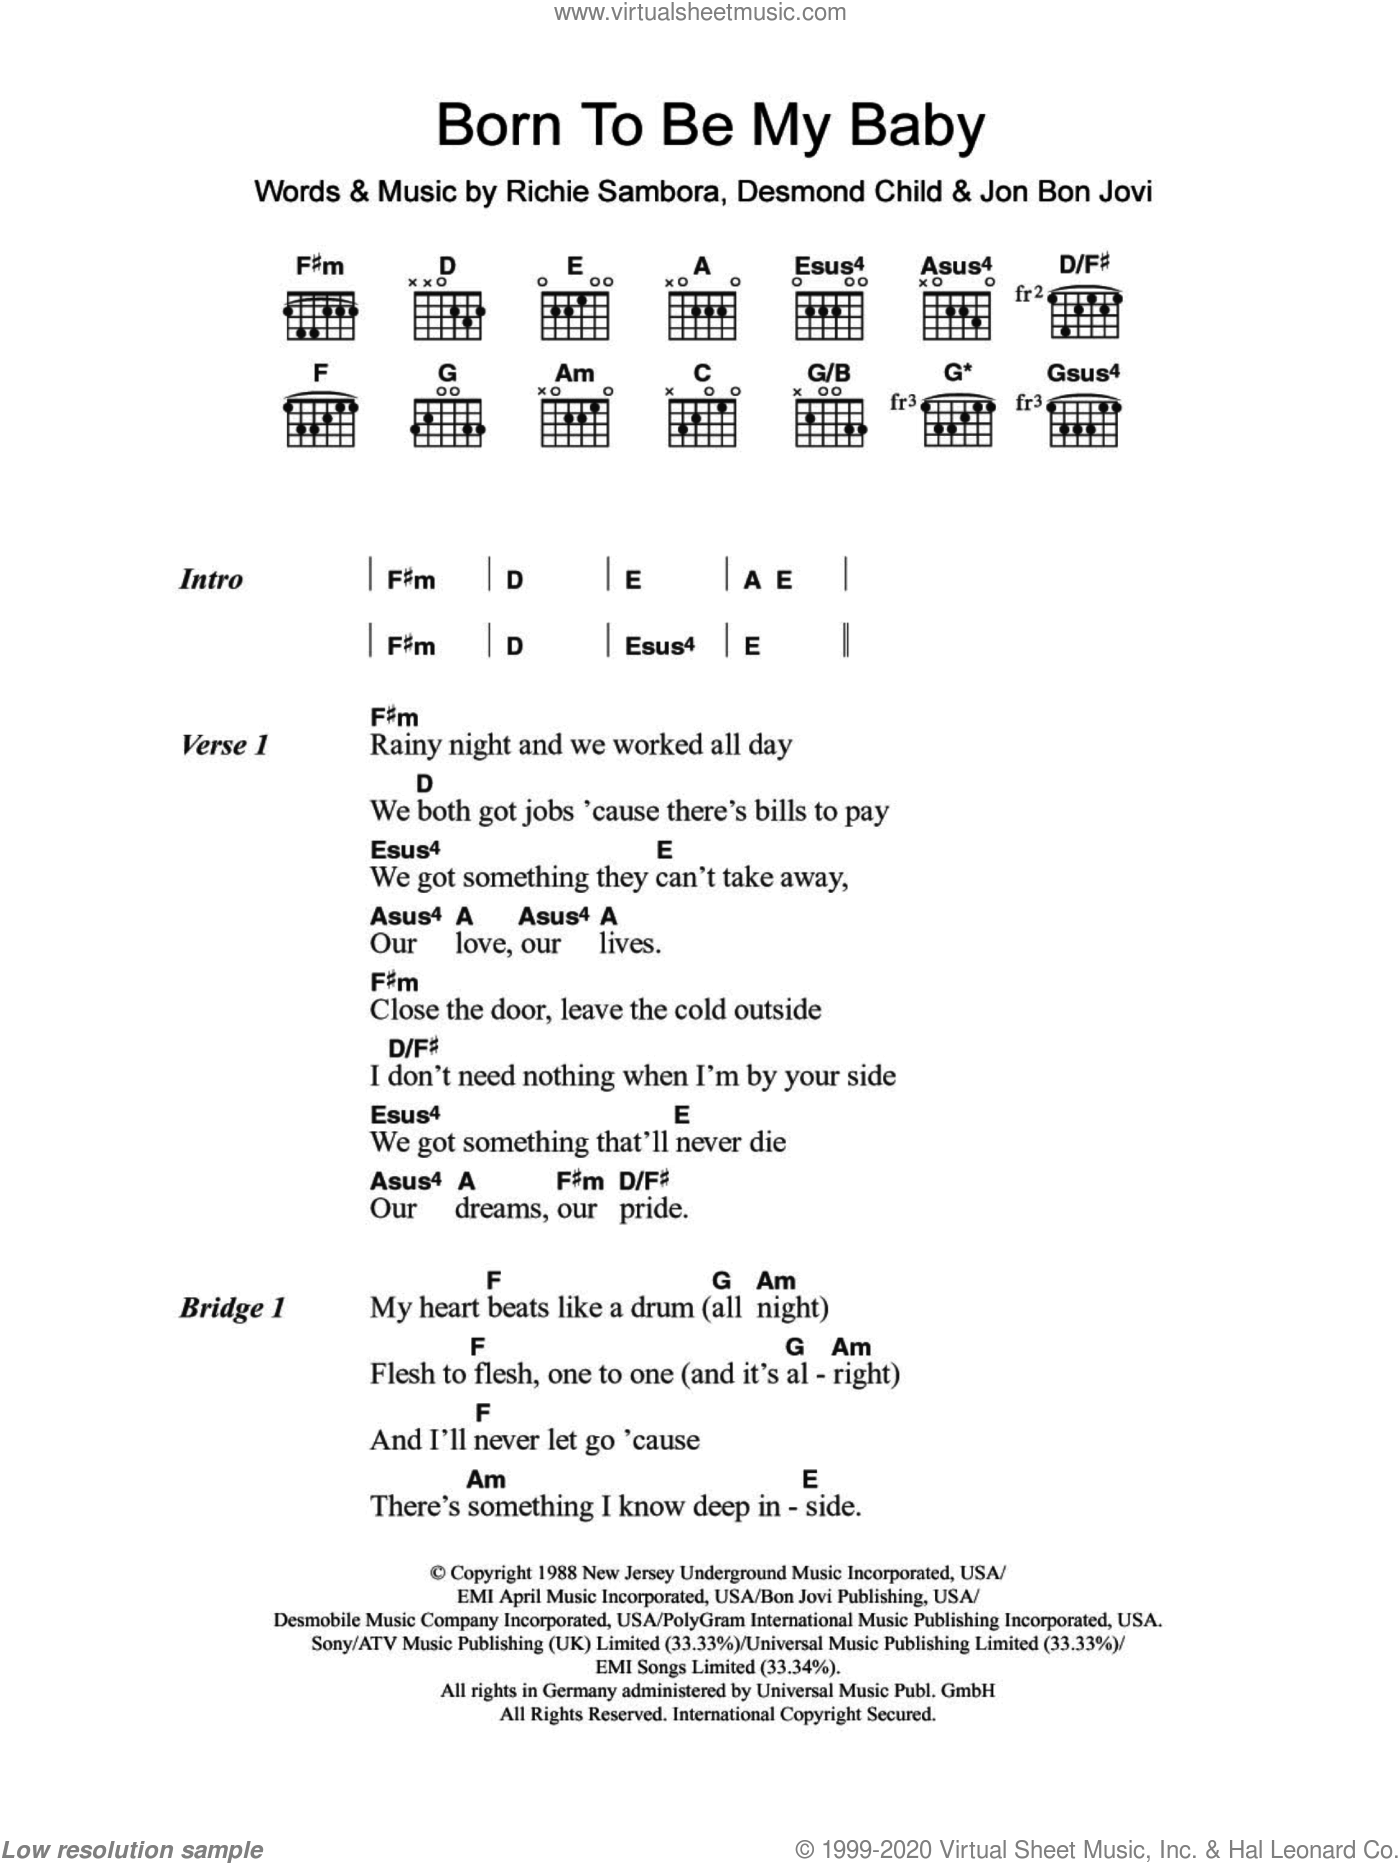 Born To Be My Baby sheet music for guitar (chords) by Richie Sambora